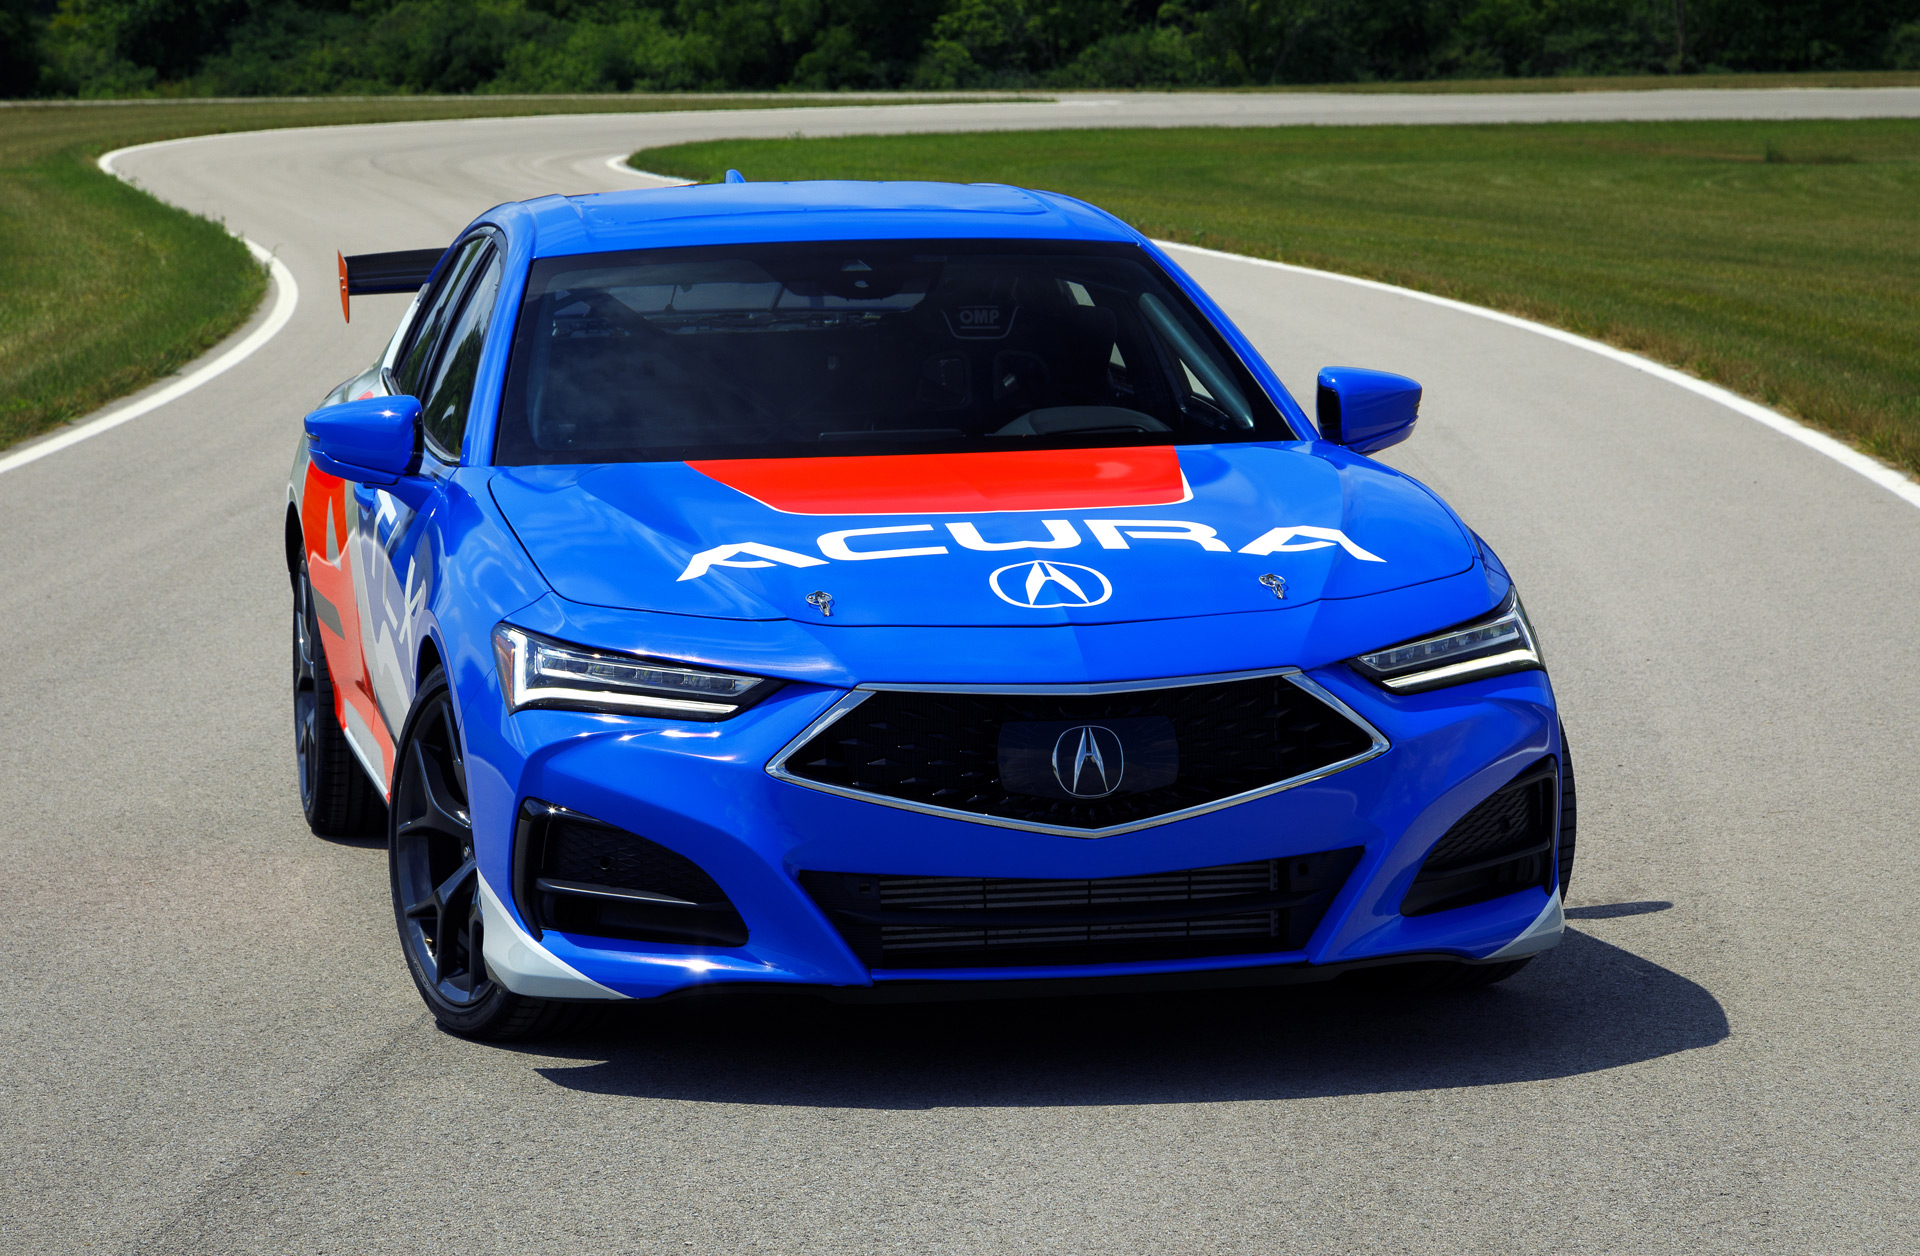 2020 - [Acura] TLX - Page 2 2021-acura-tlx-race-car-to-tackle-2020-pikes-peak-international-hill-climb_100754380_h